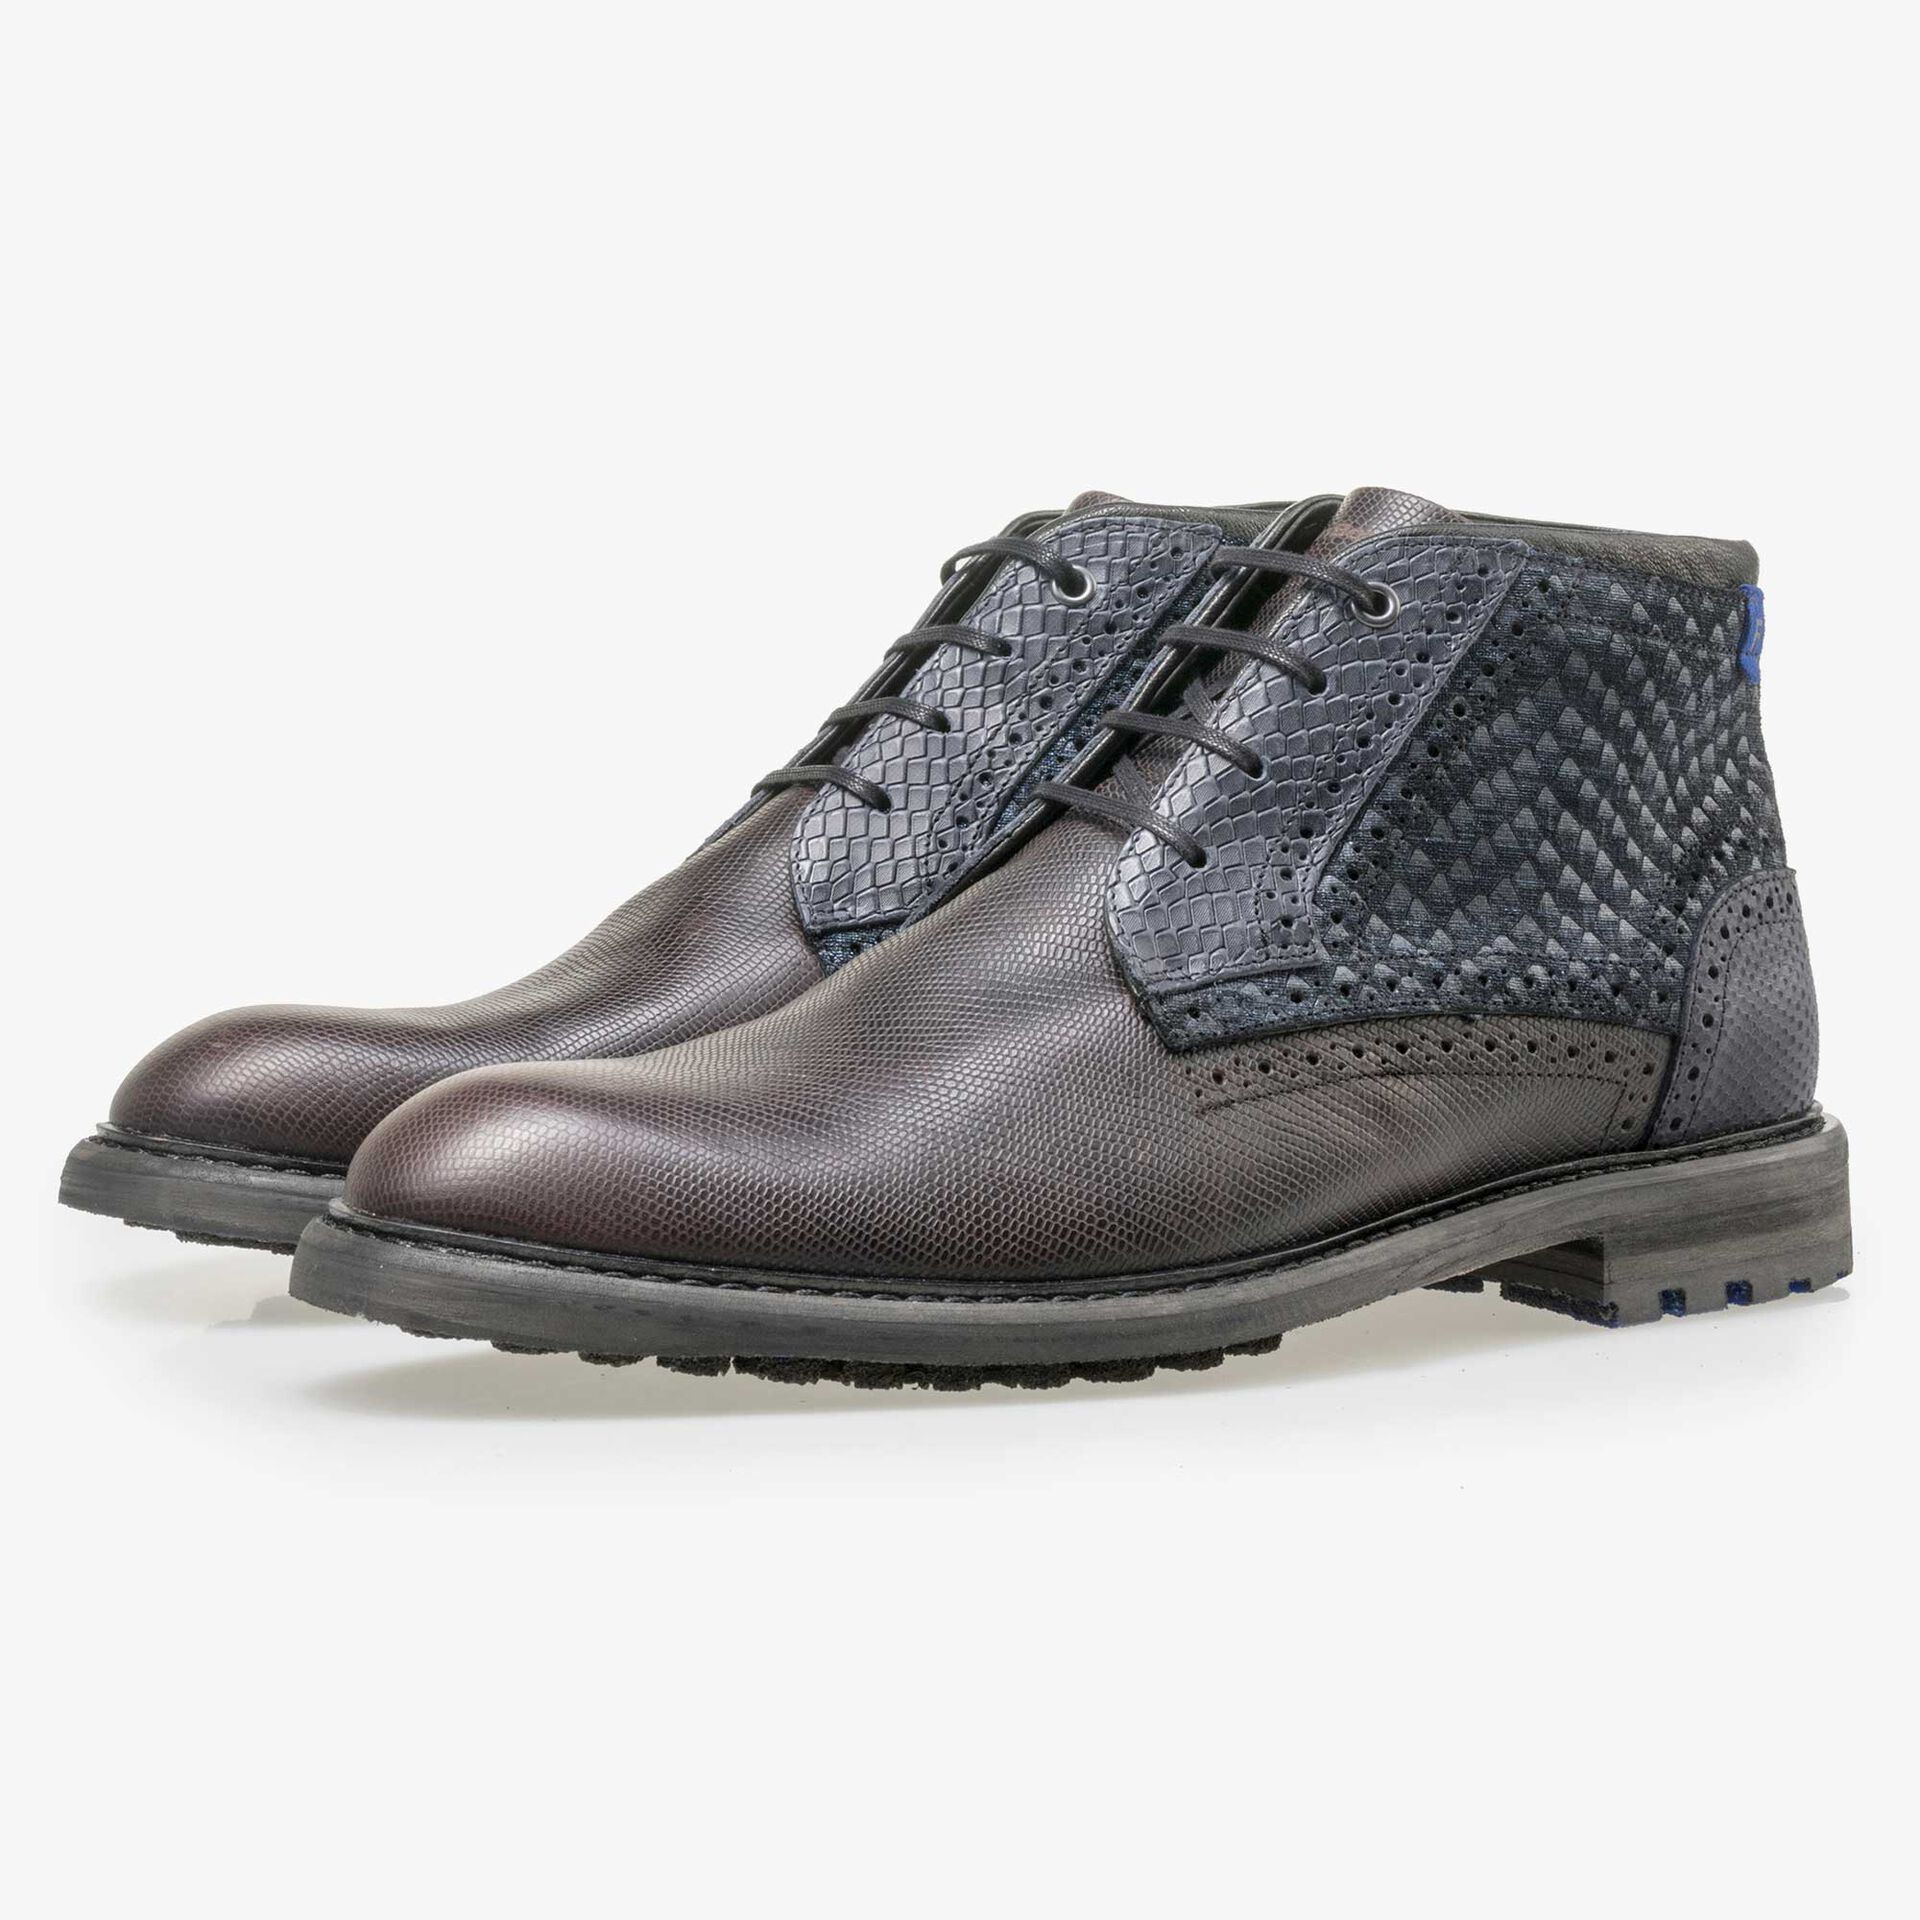 Floris van Bommel men's dark brown leather lace boot with a snake print